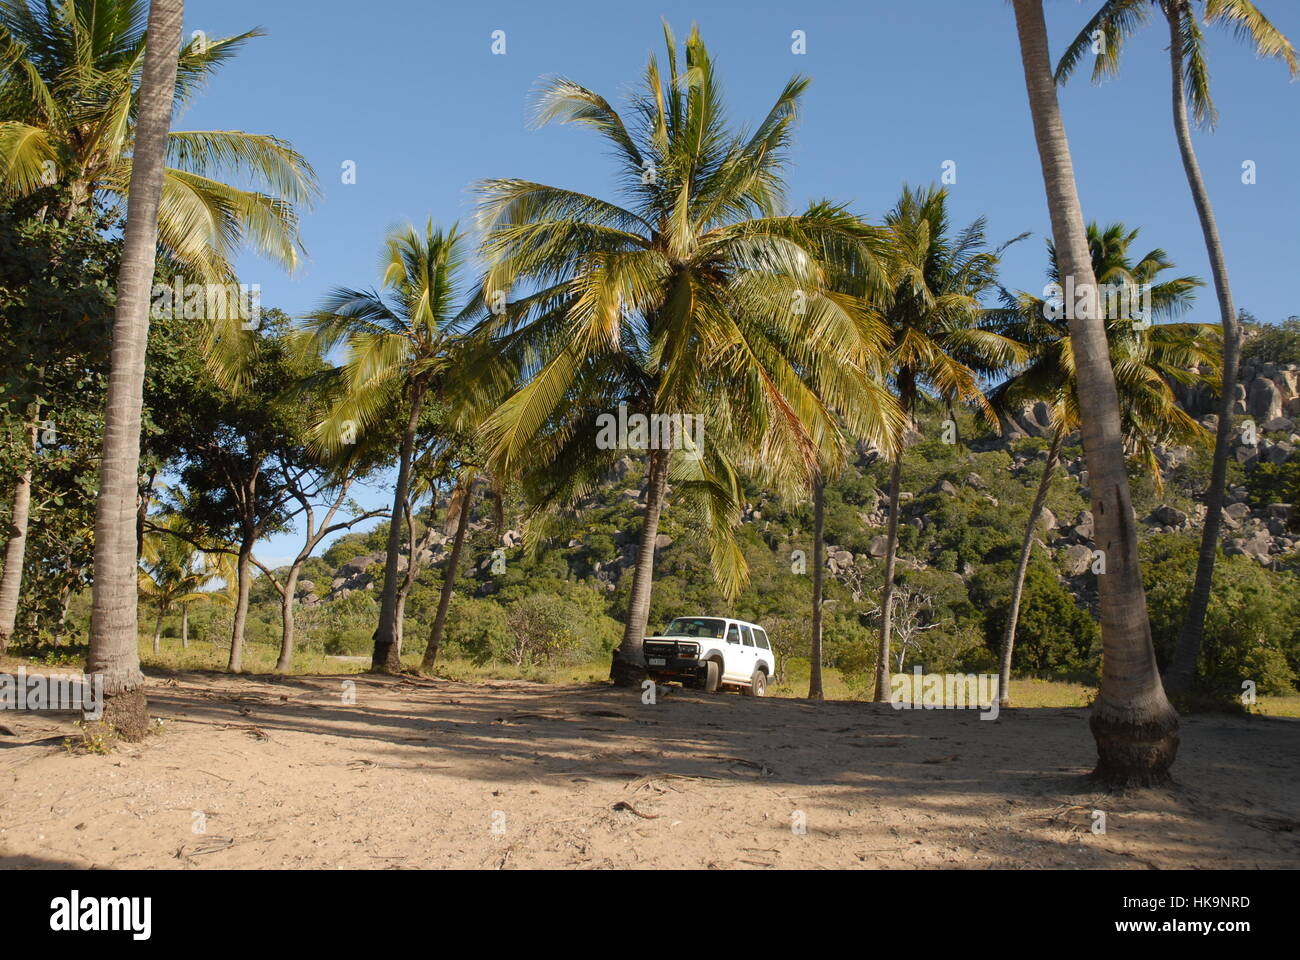 4WD Toyota Landcruiser parked off road under a coconut palm at the beach at Radical Bay, Magnetic Island, Queensland, - Stock Image